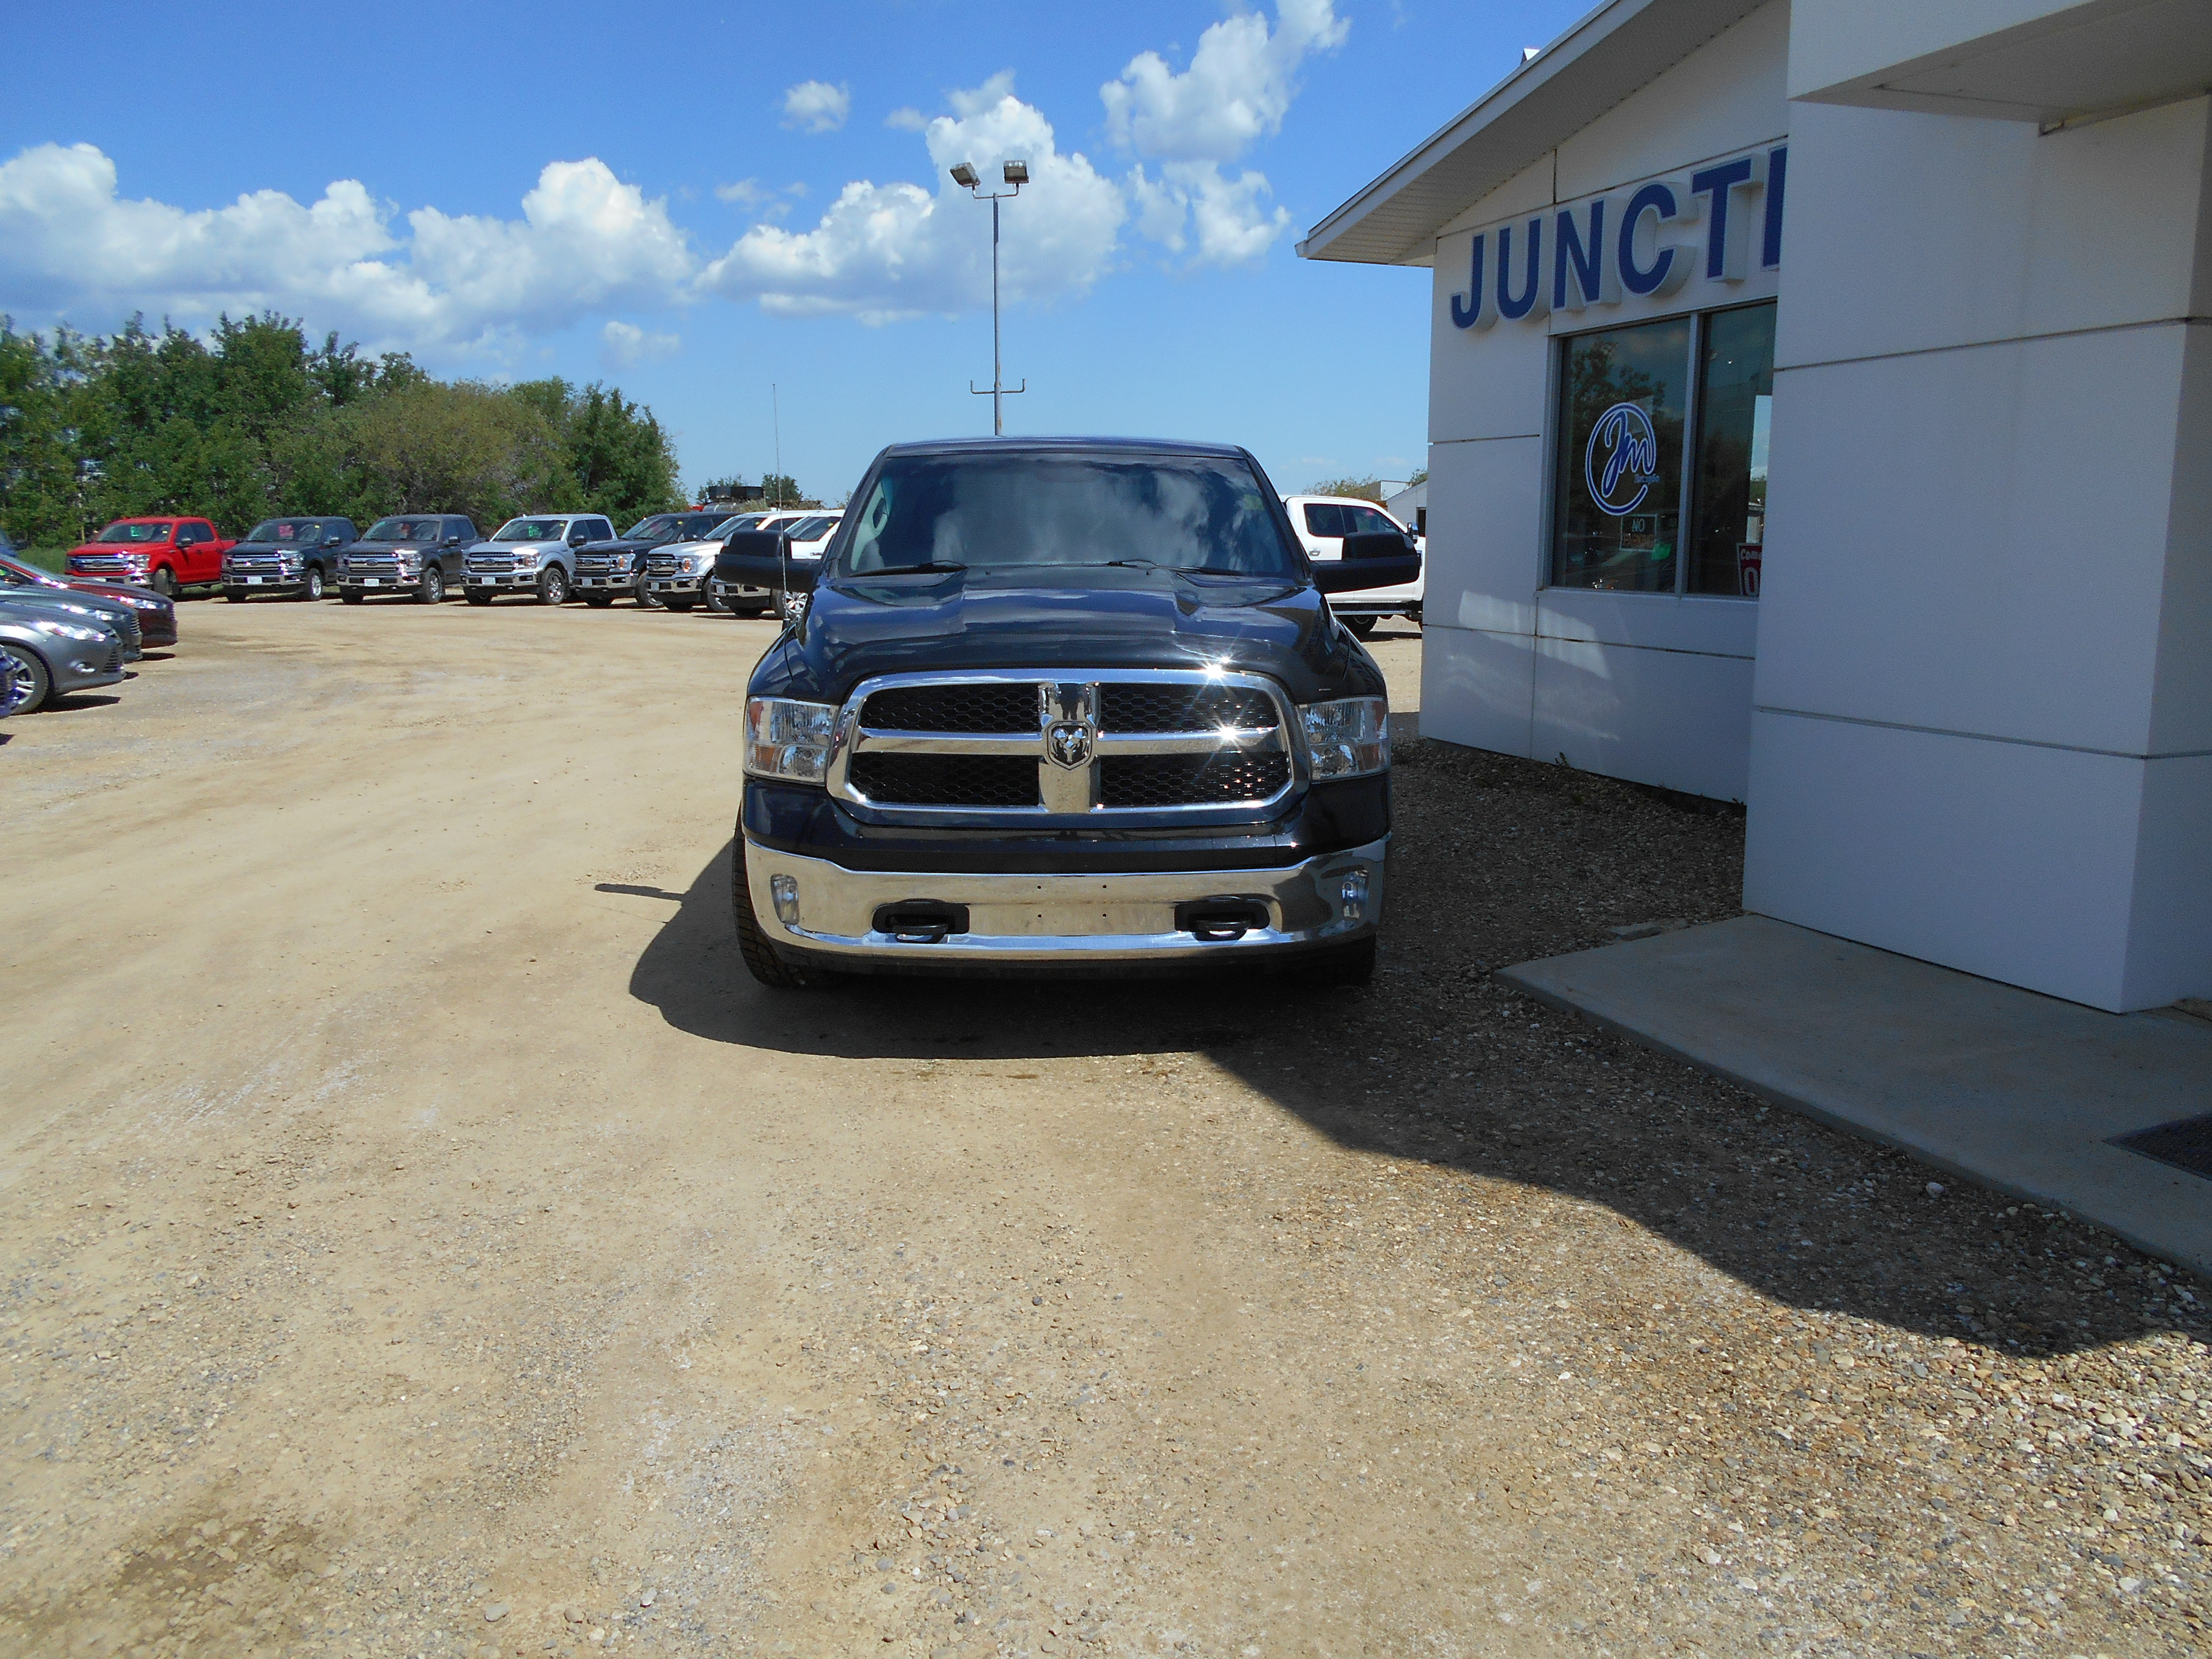 Used Car Lots For Rent Near Me